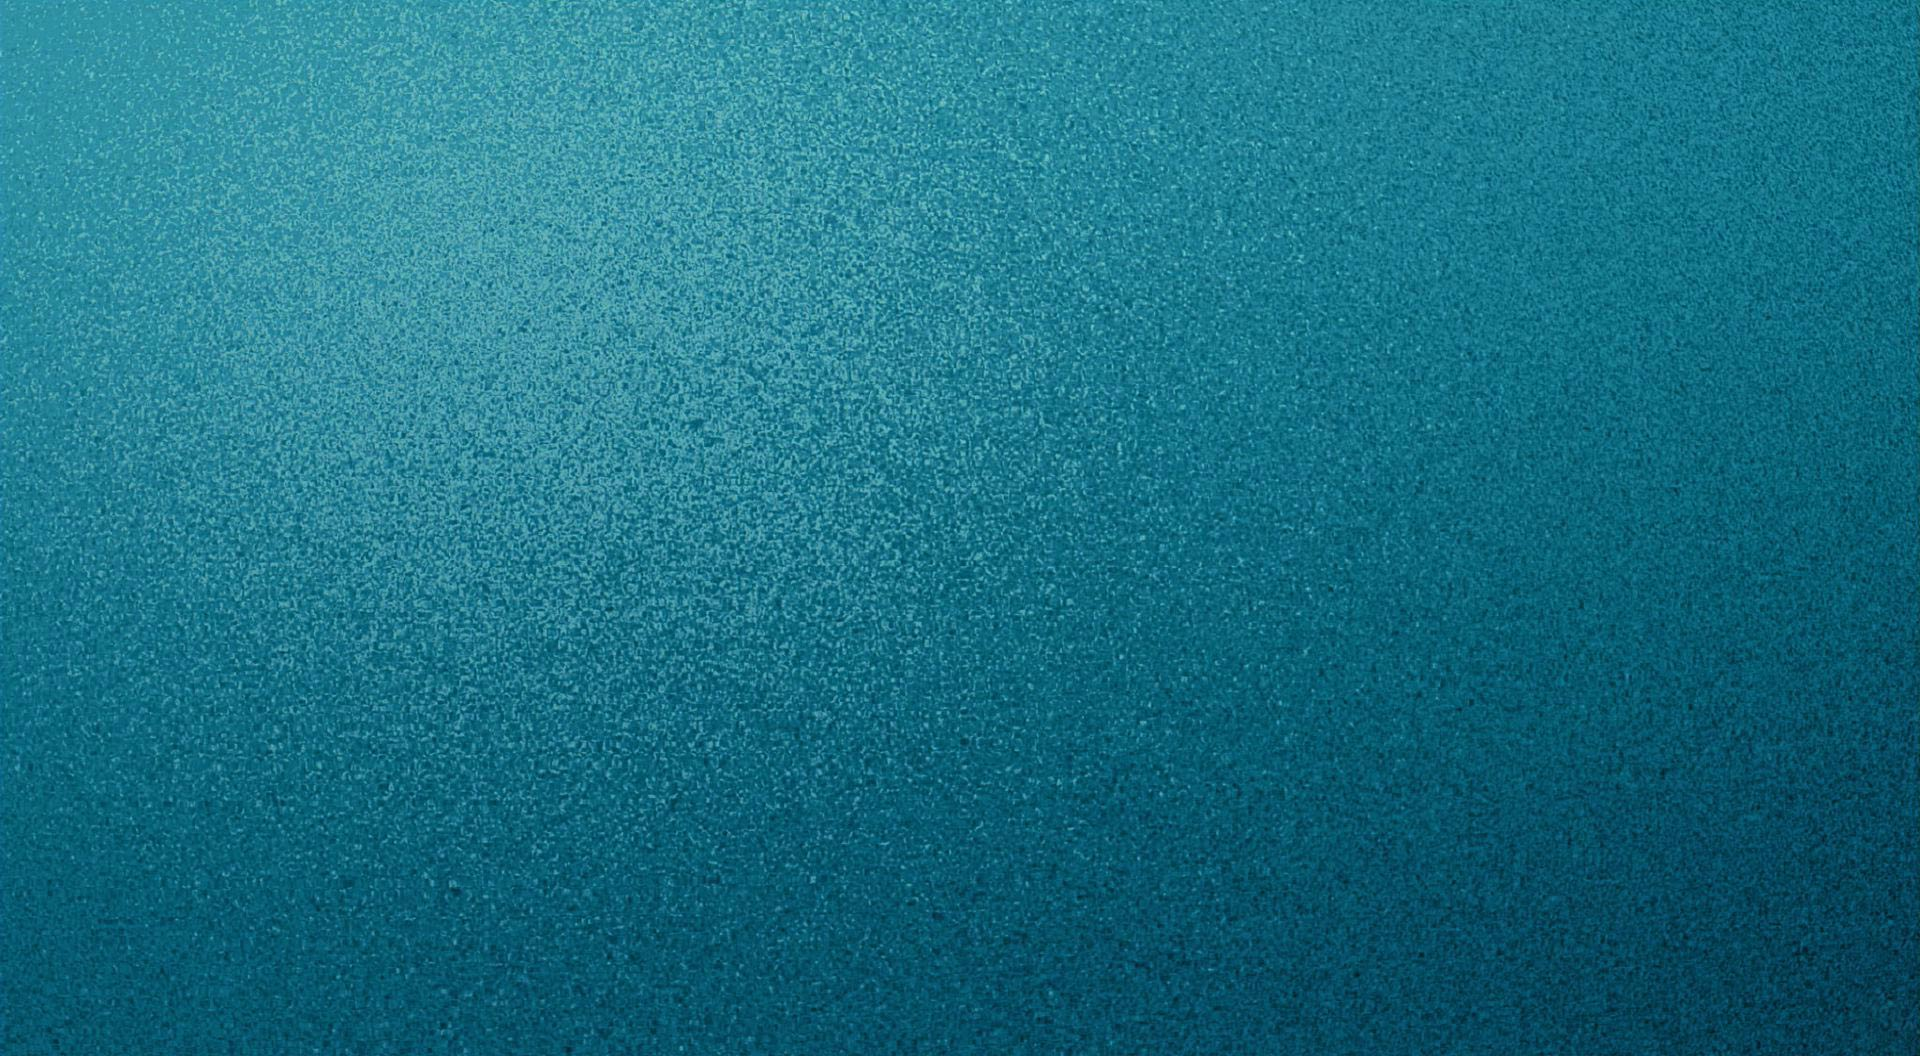 Texture Backgrounds Wallpapers for PowerPoint